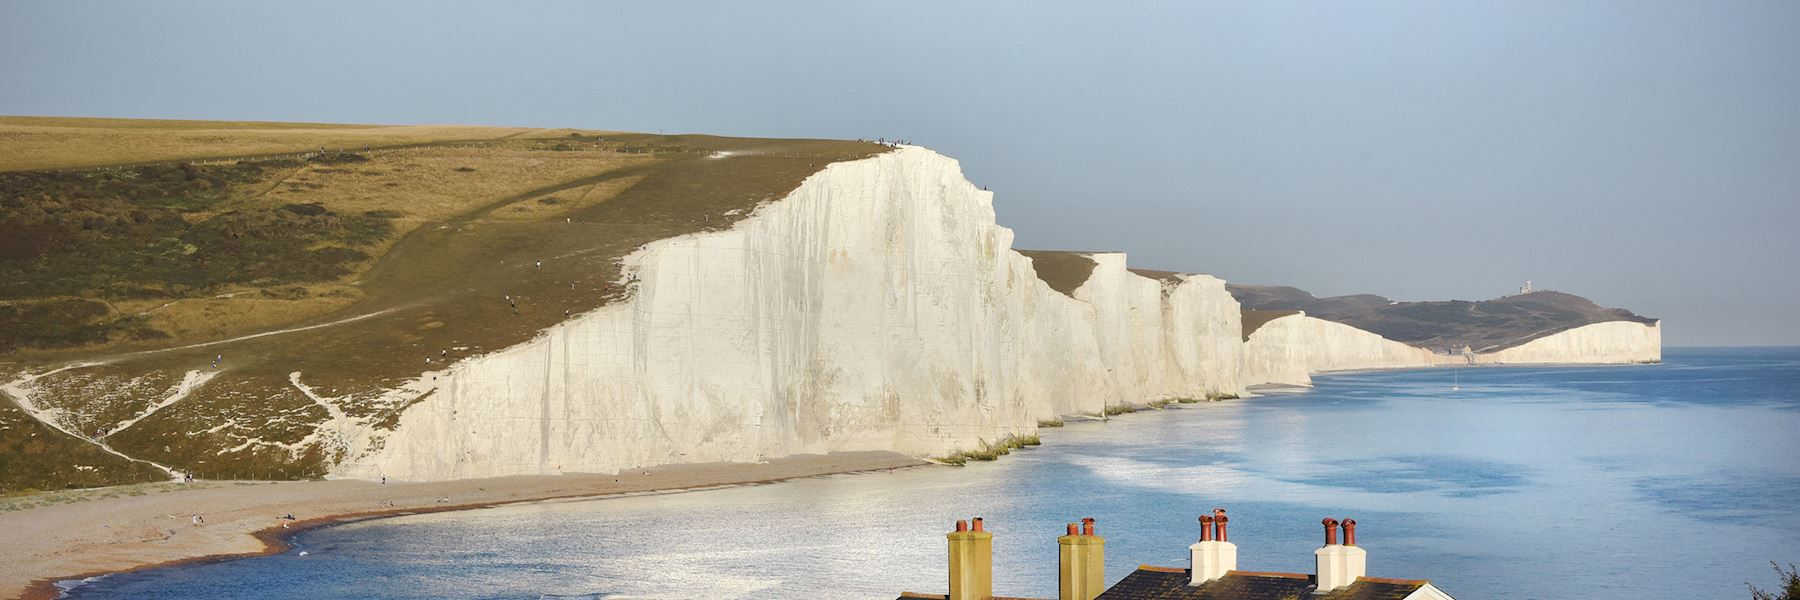 Visit The White Cliffs Of Dover England Audley Travel